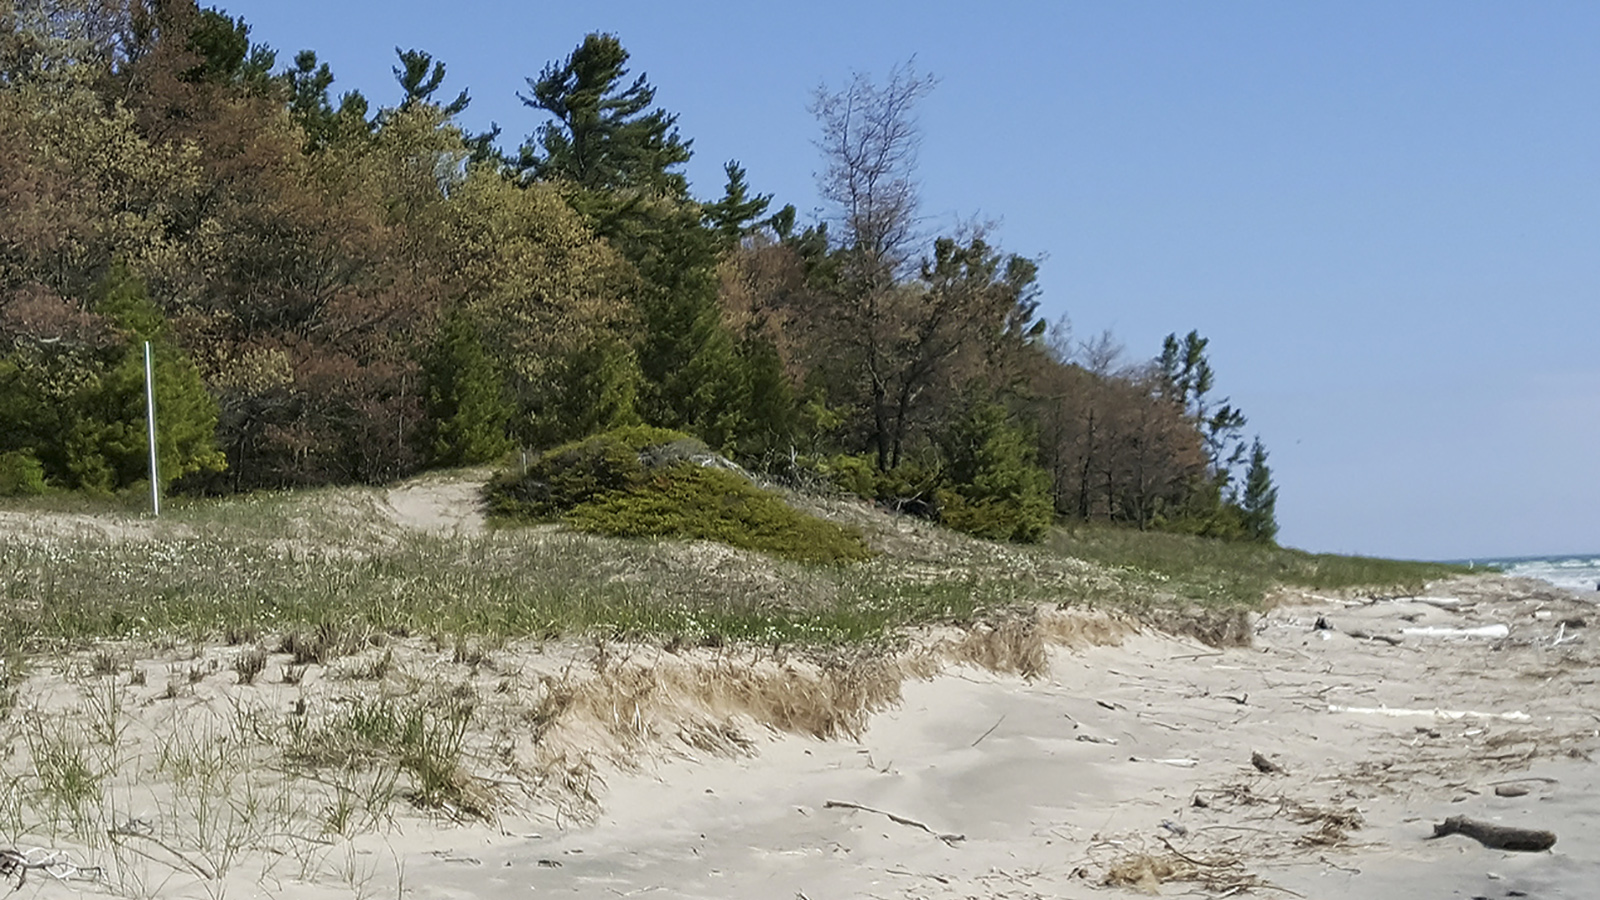 Sandy beach with trees in background and vertical pipe marking a proposed golf course hole